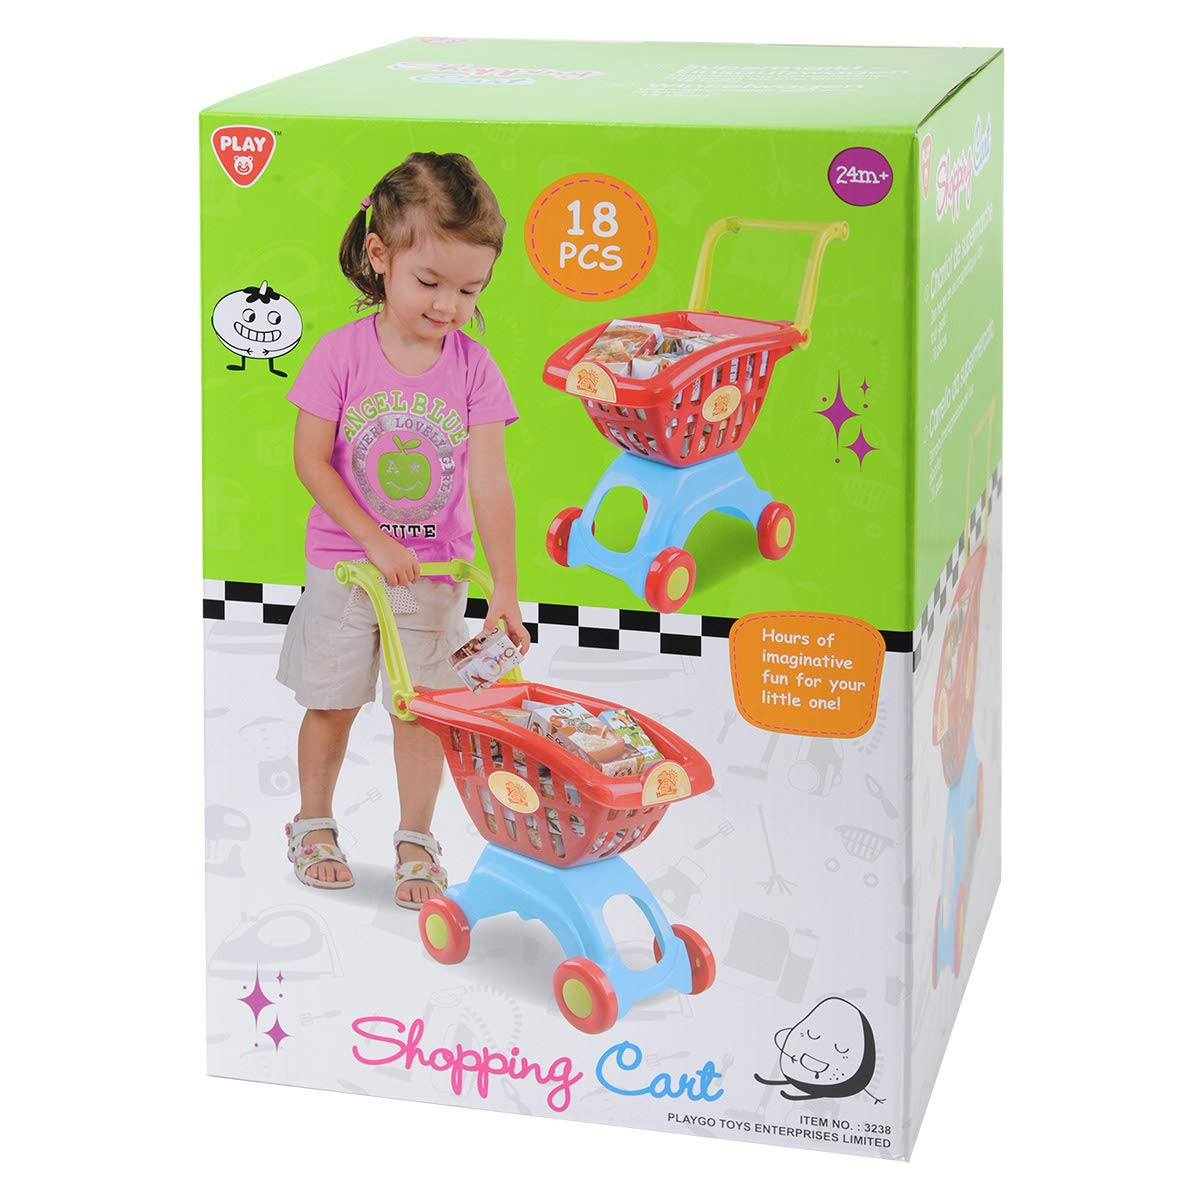 PlayGo Lightweight Shopping Cart Toy 18 Pc Set with Adjustable Handle Pretend Play for Toddler Kids Age 3 Years & Up by PlayGo (Image #4)